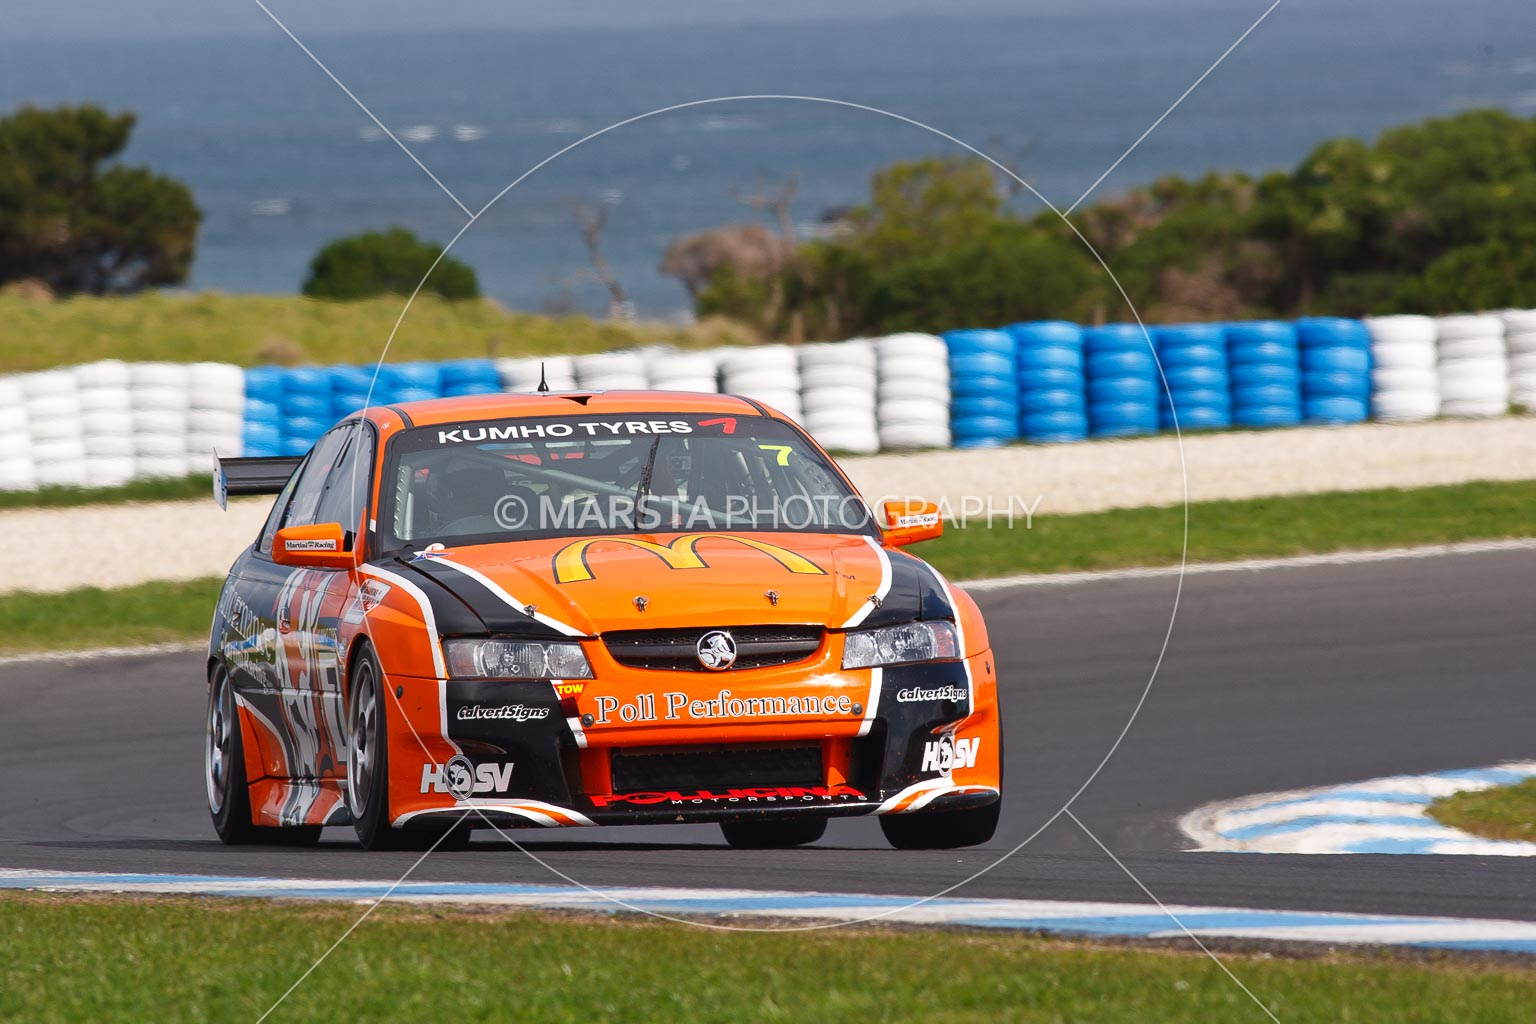 (7);23 September 2012;7;Australia;Holden Commodore VZ;Jim Pollicina;Phillip Island;Shannons Nationals;V8 Touring Cars;VIC;Victoria;auto;motorsport;racing;super telephoto